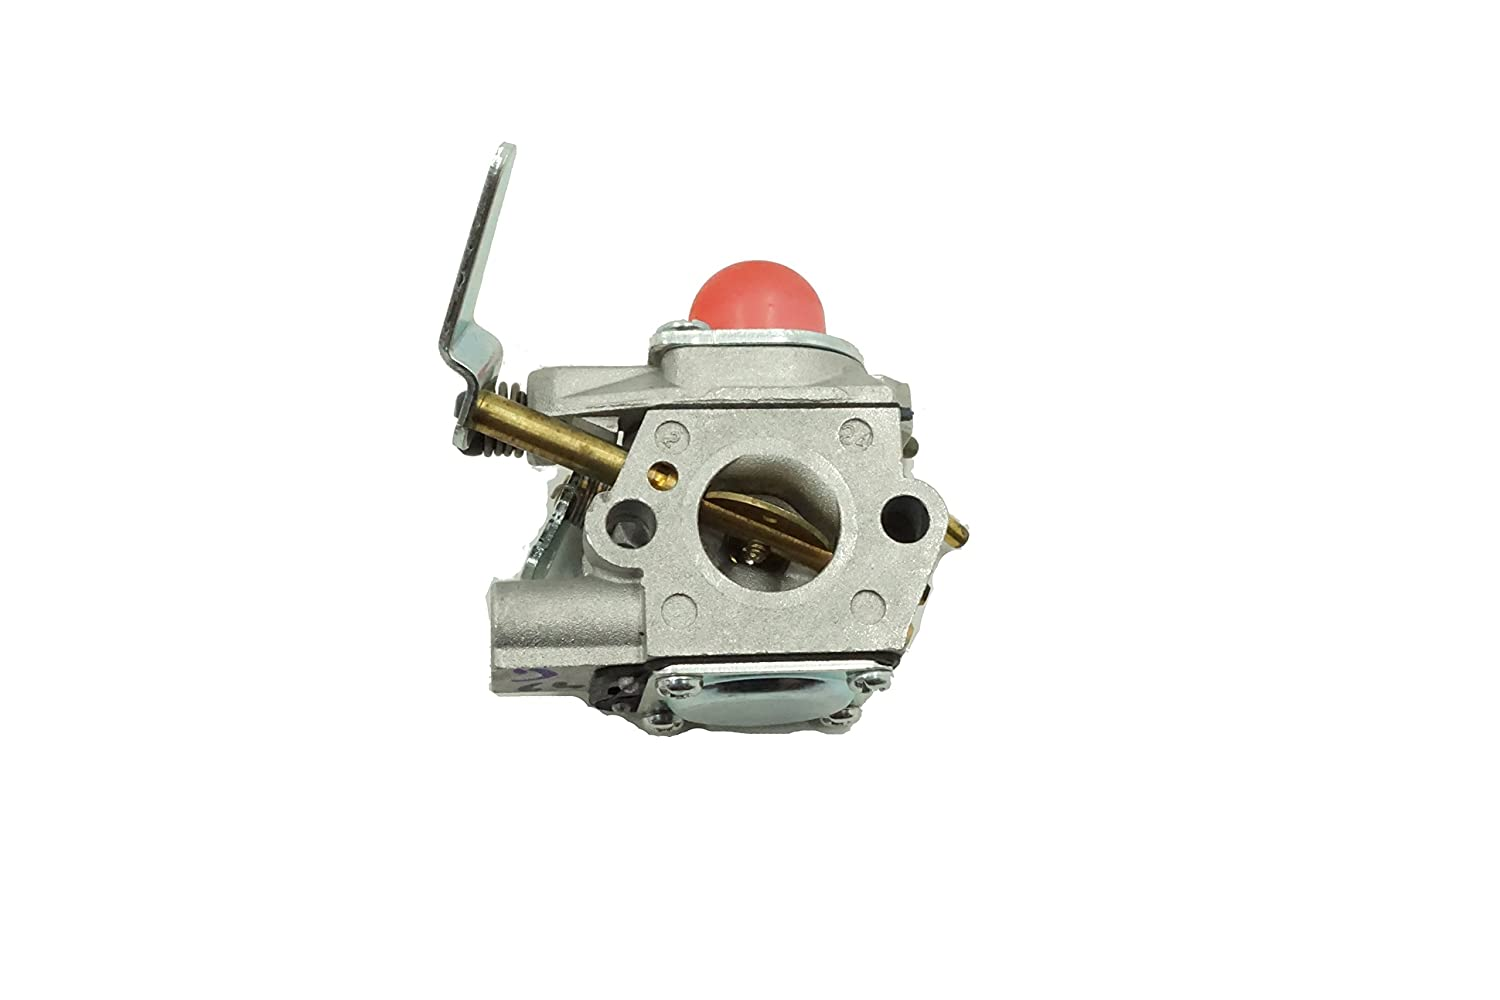 Amazon.com : GENUINE OEM POULAN PART # 530071634 CARBURETOR;WEED EATER  EDGER PE550 GE21 PP135 : Garden & Outdoor